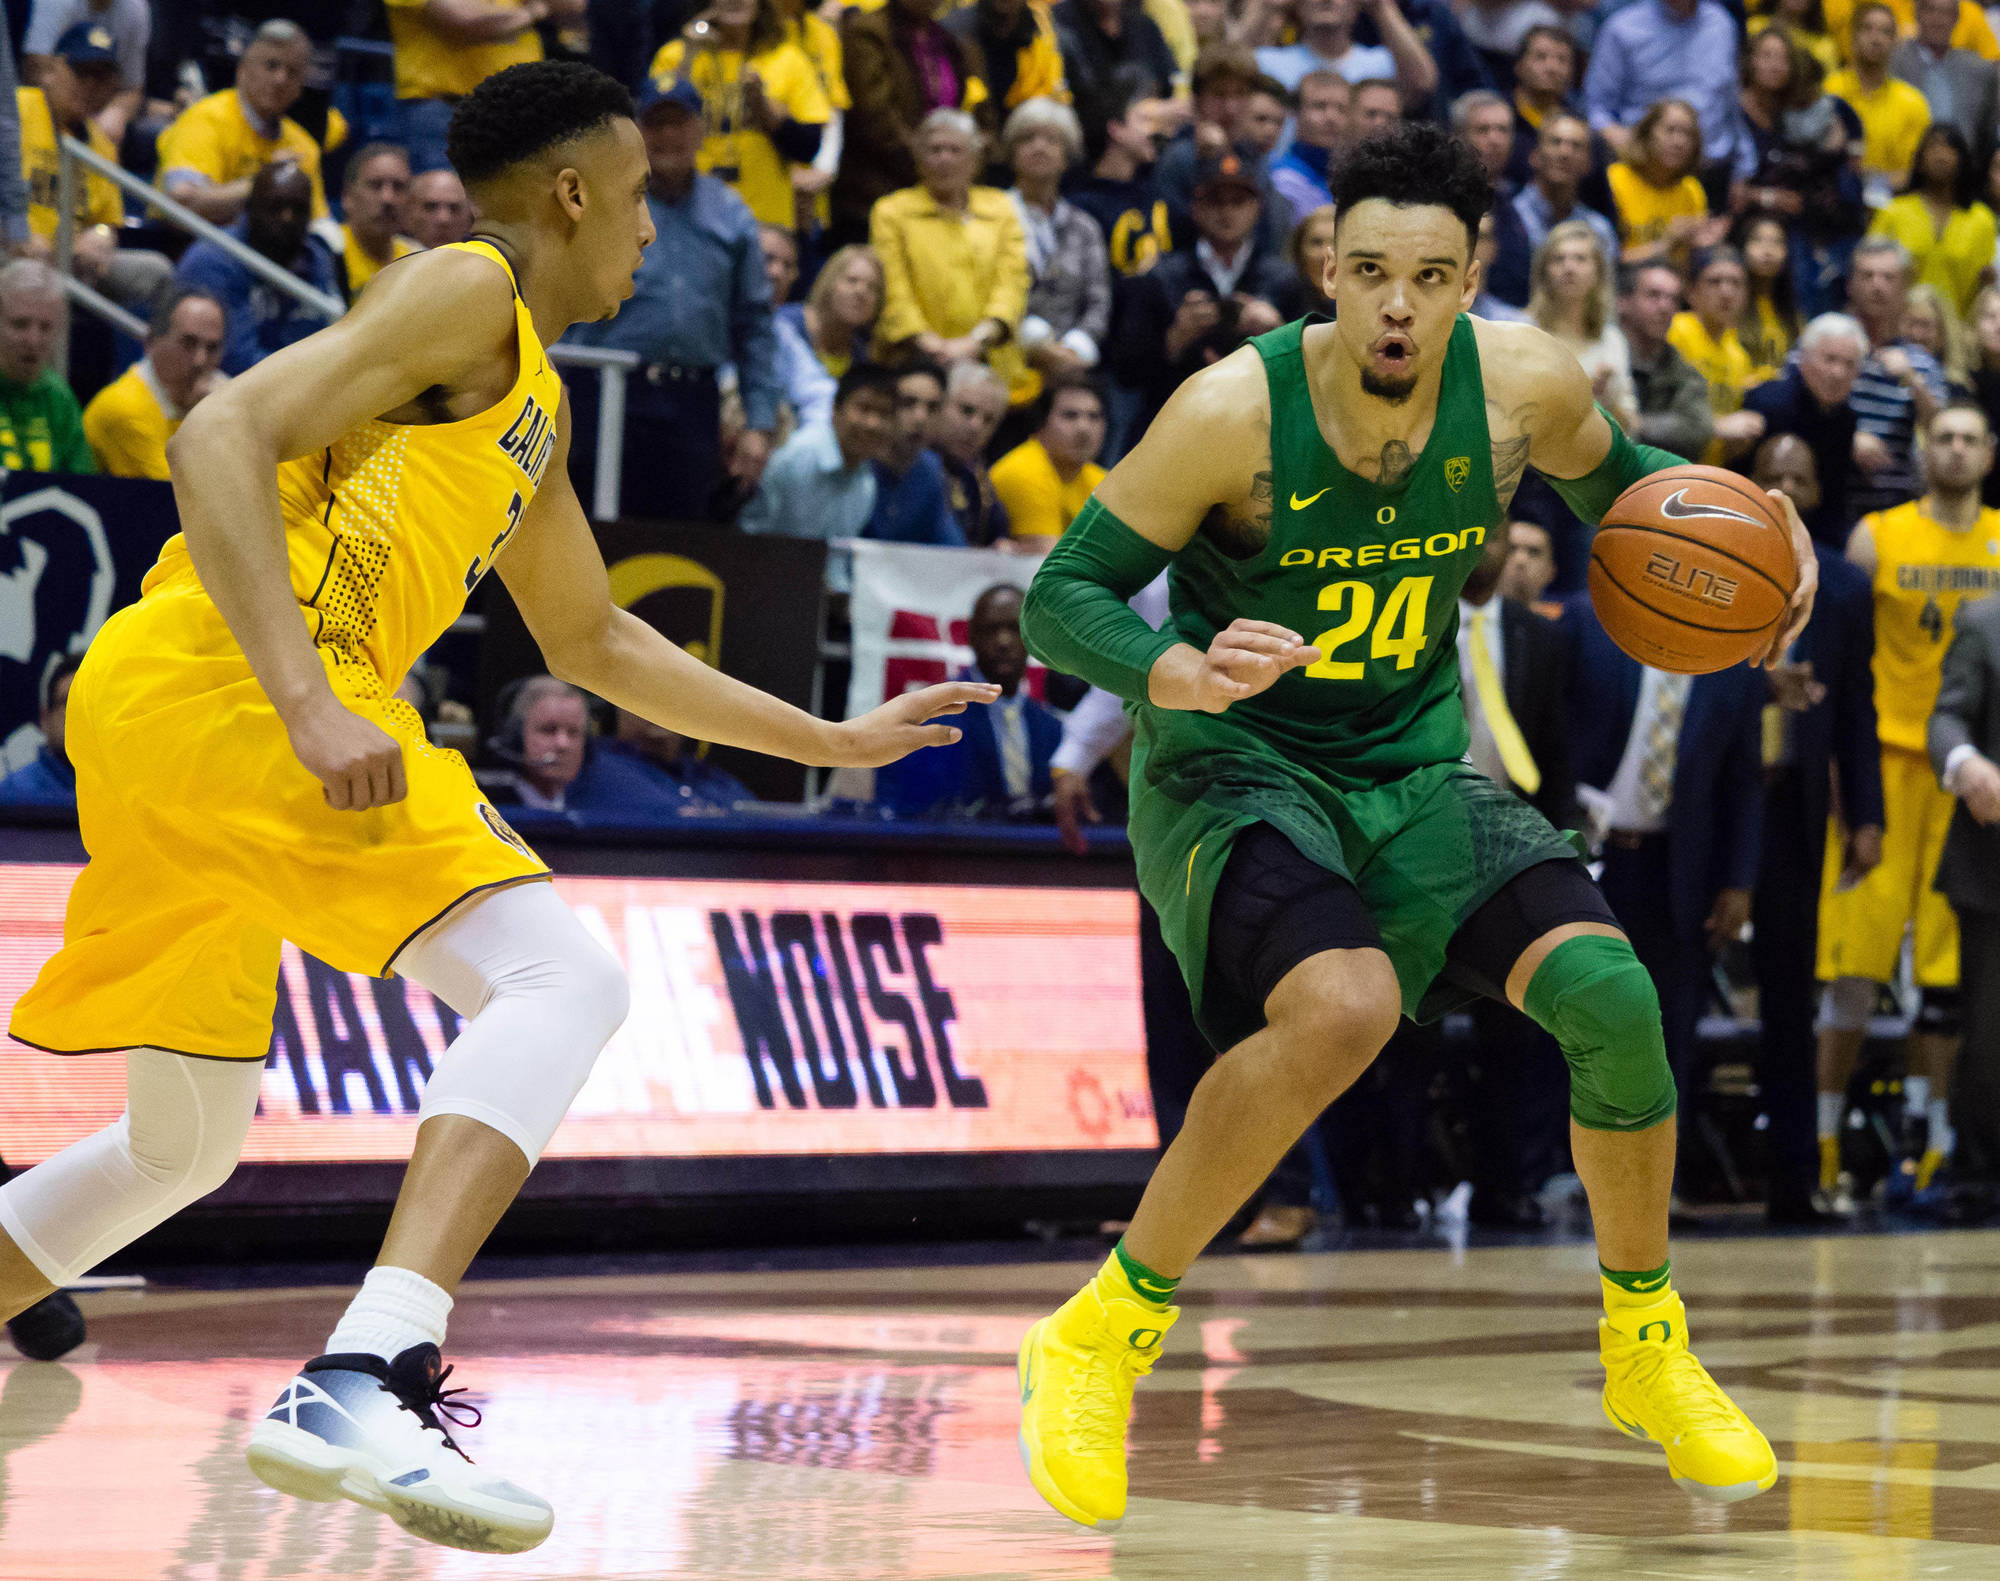 Why the Oregon Ducks have a great shot at making it to the Final Four this year